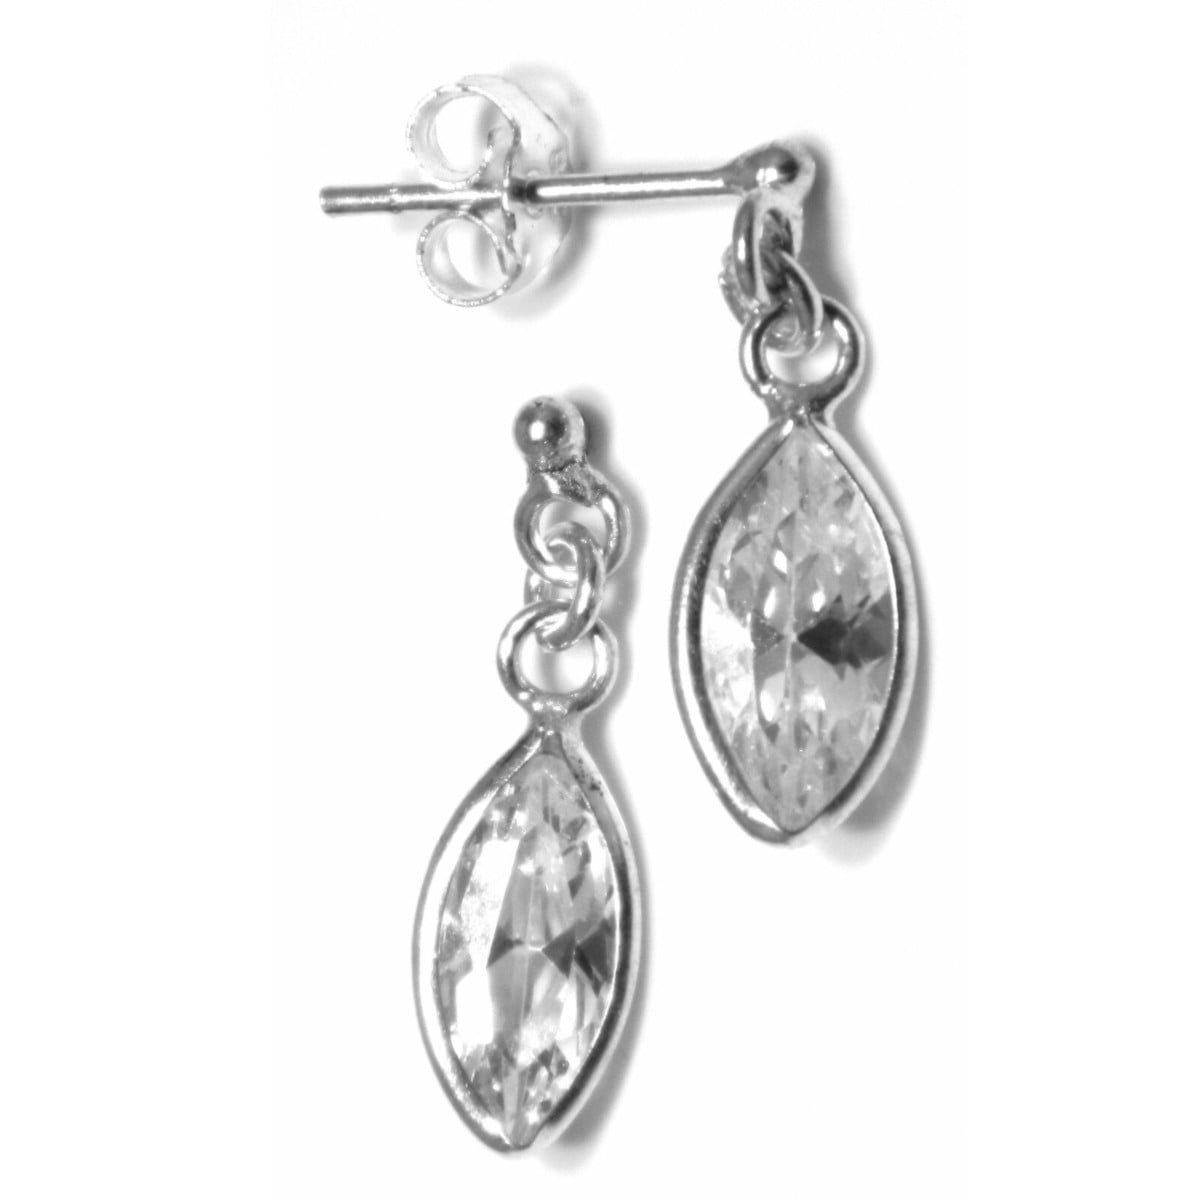 10 mm x 5 mm CZ oval drop earrings in sterling silver